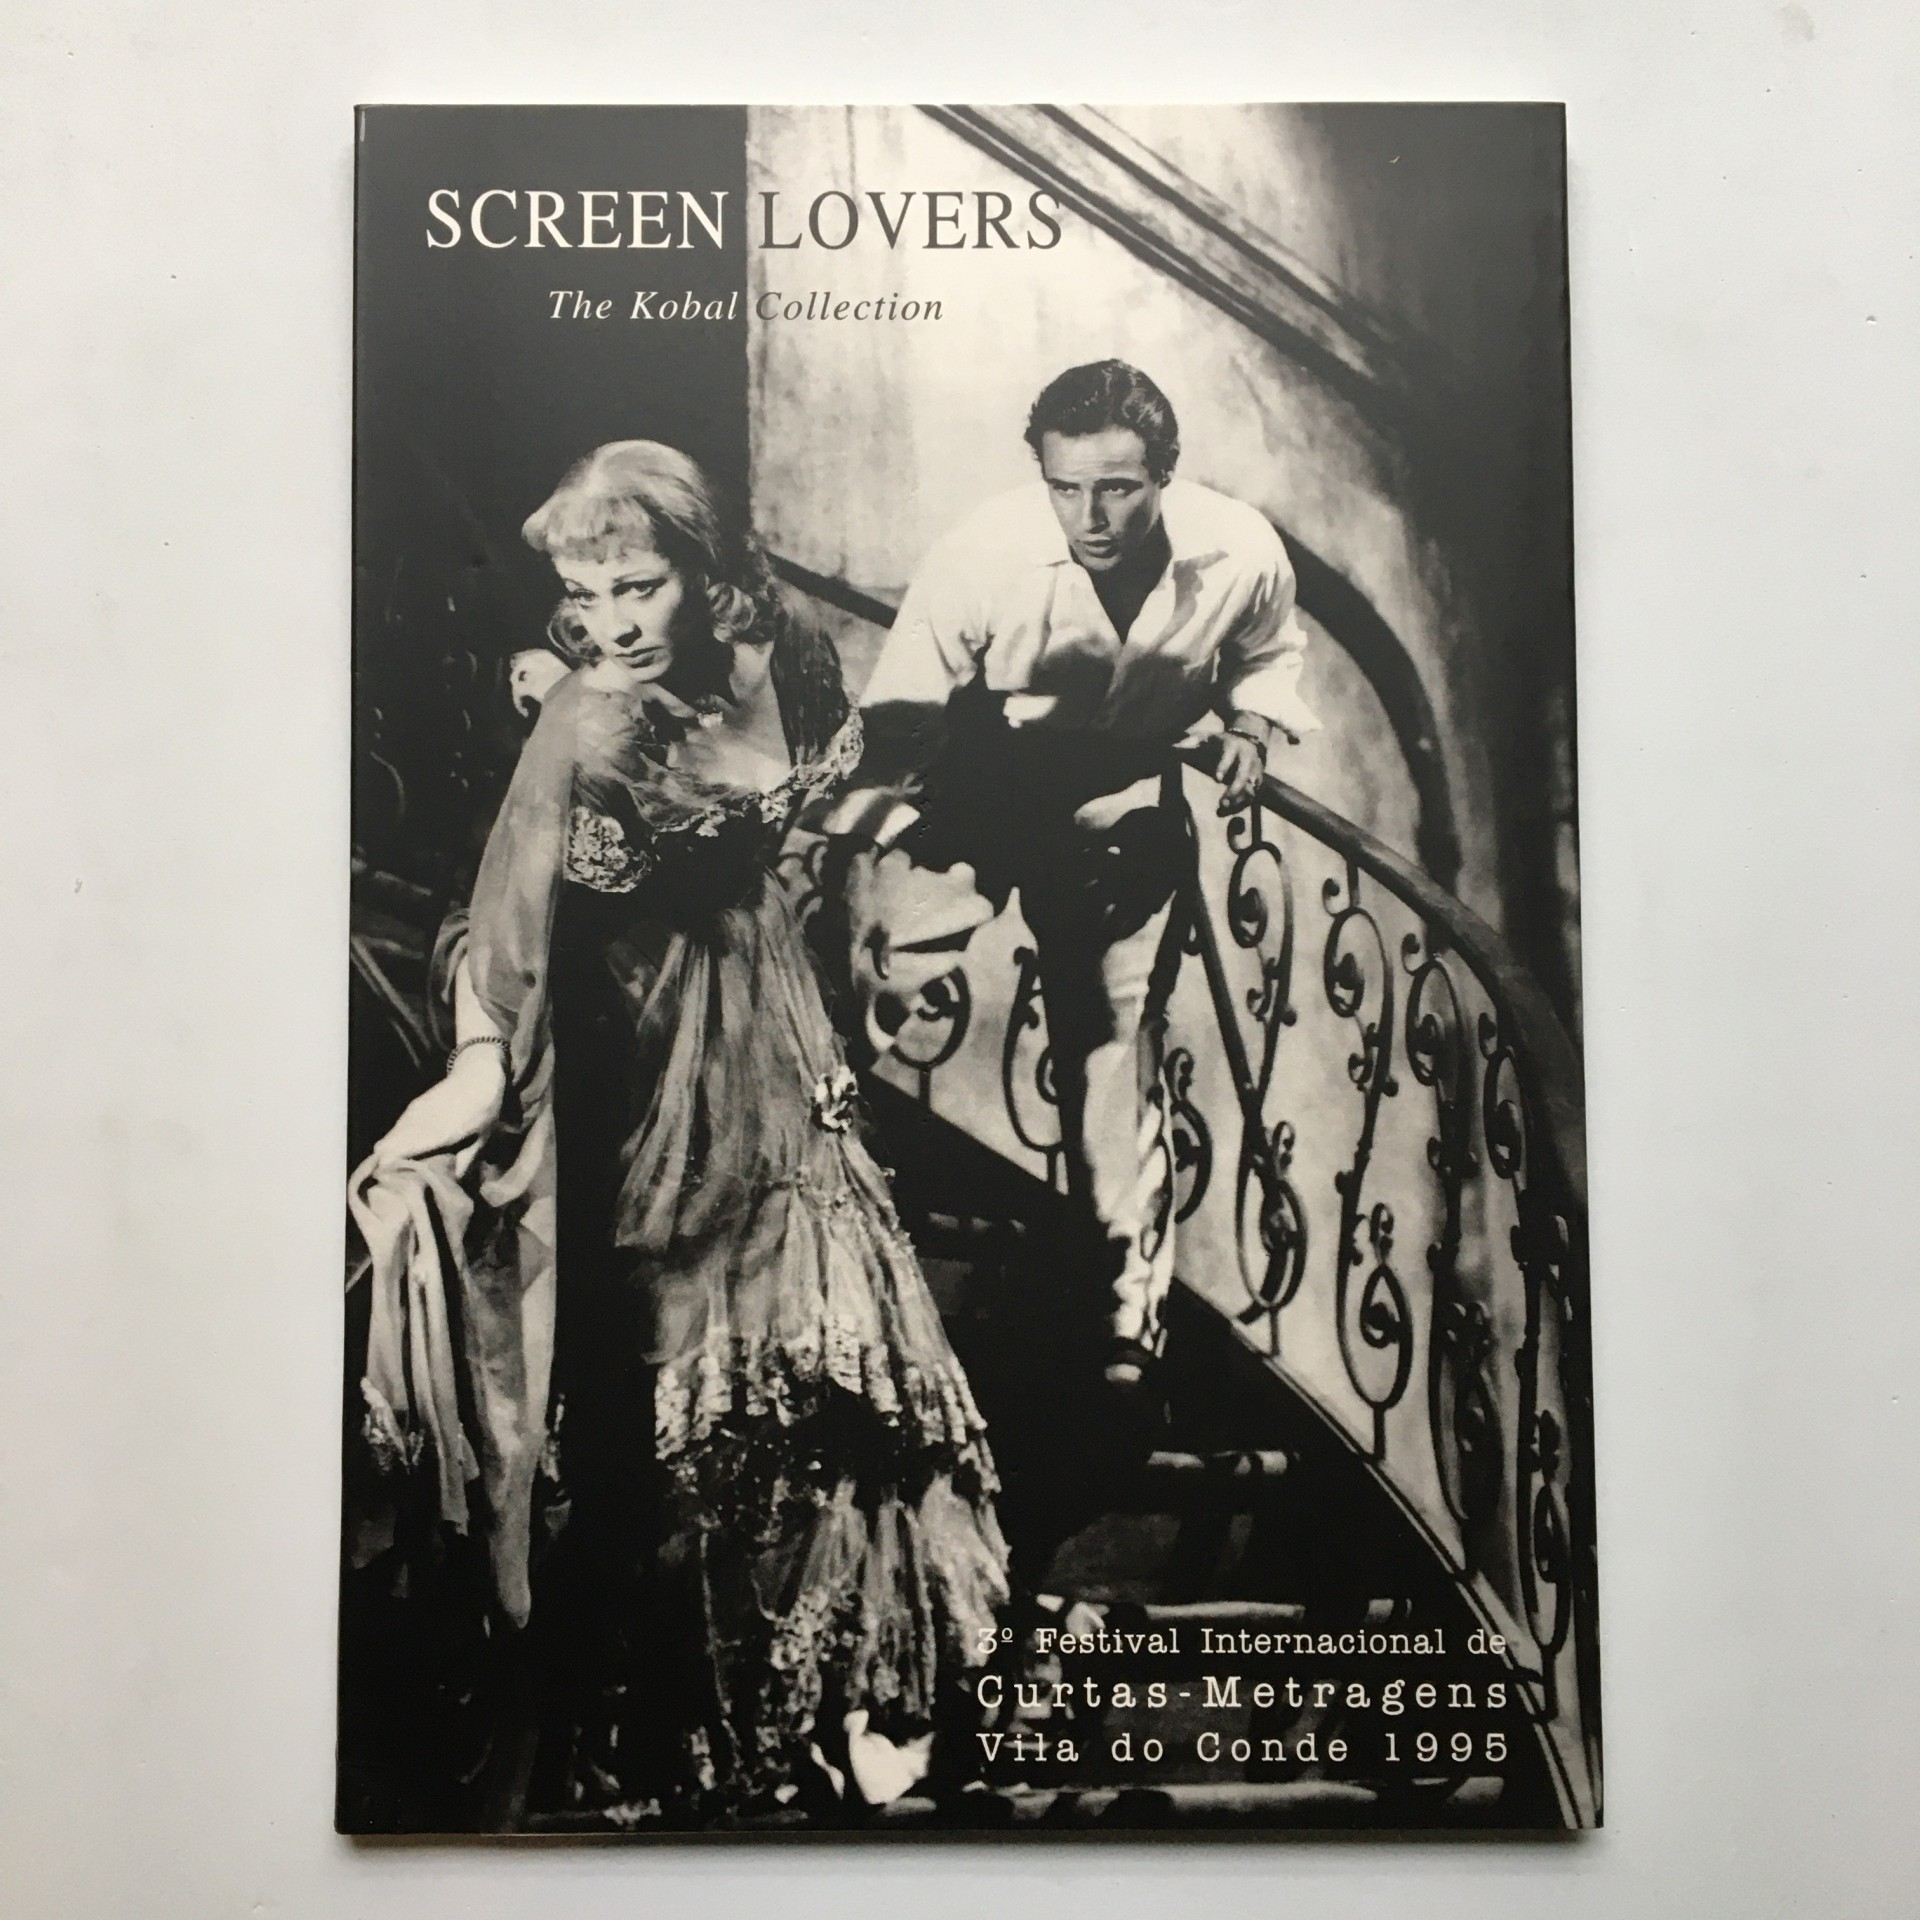 Screen Lovers: The Kobal Collection